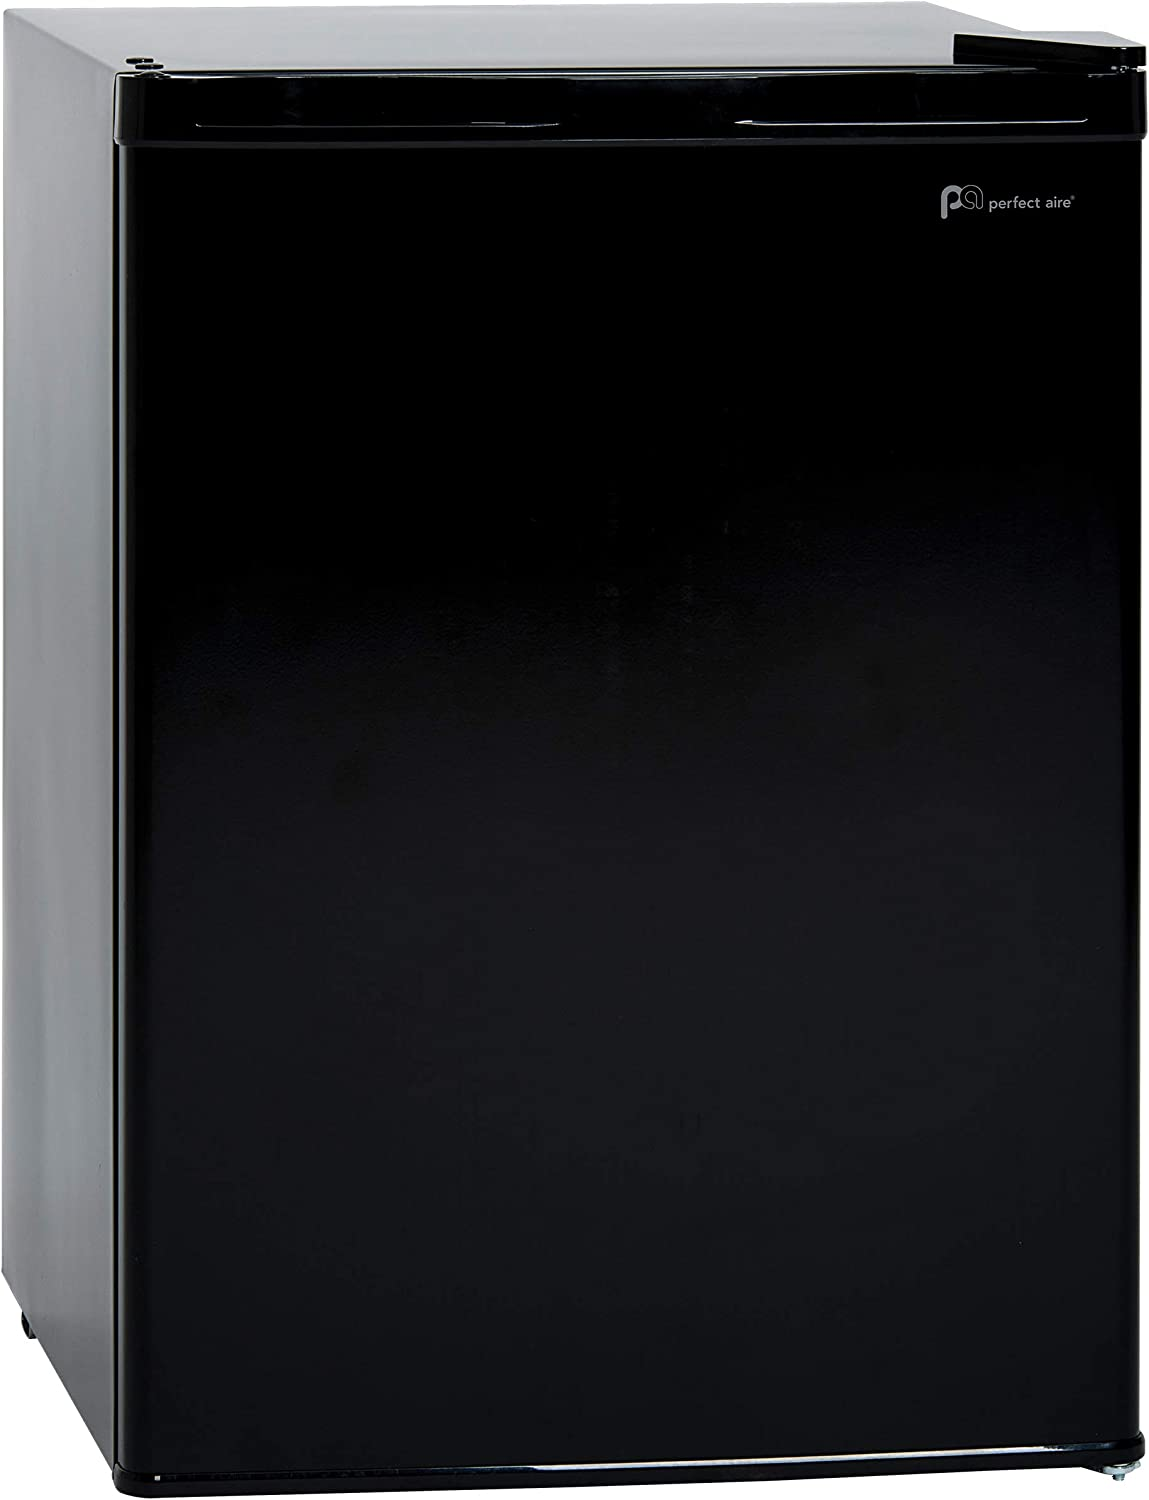 PerfectAire 2.6-Cu. Ft. Single-Door Black, 3W1BF26 Compact Refrigerator,